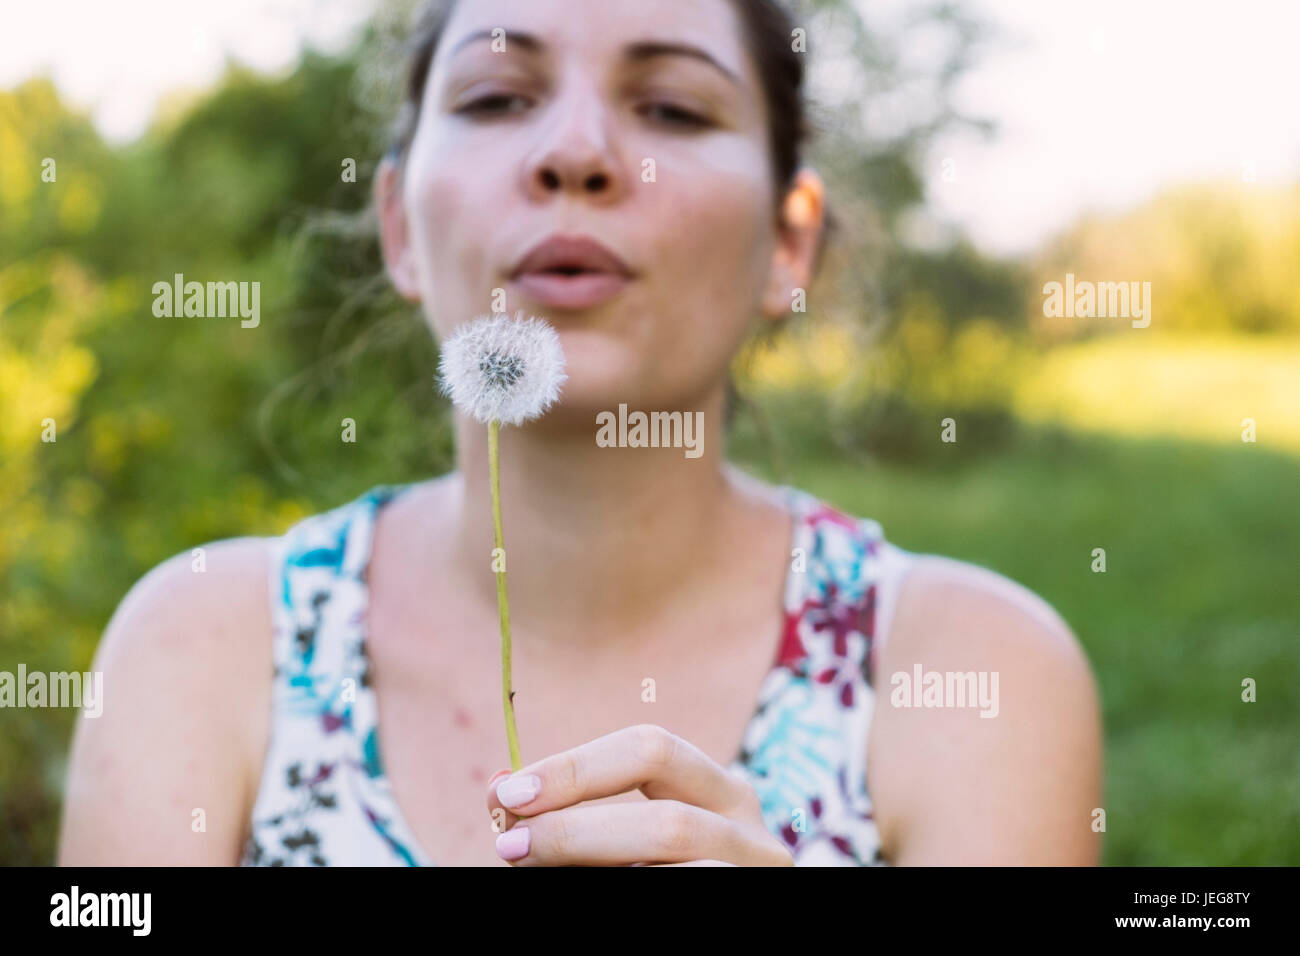 Woman blowing dandelion Photo Stock